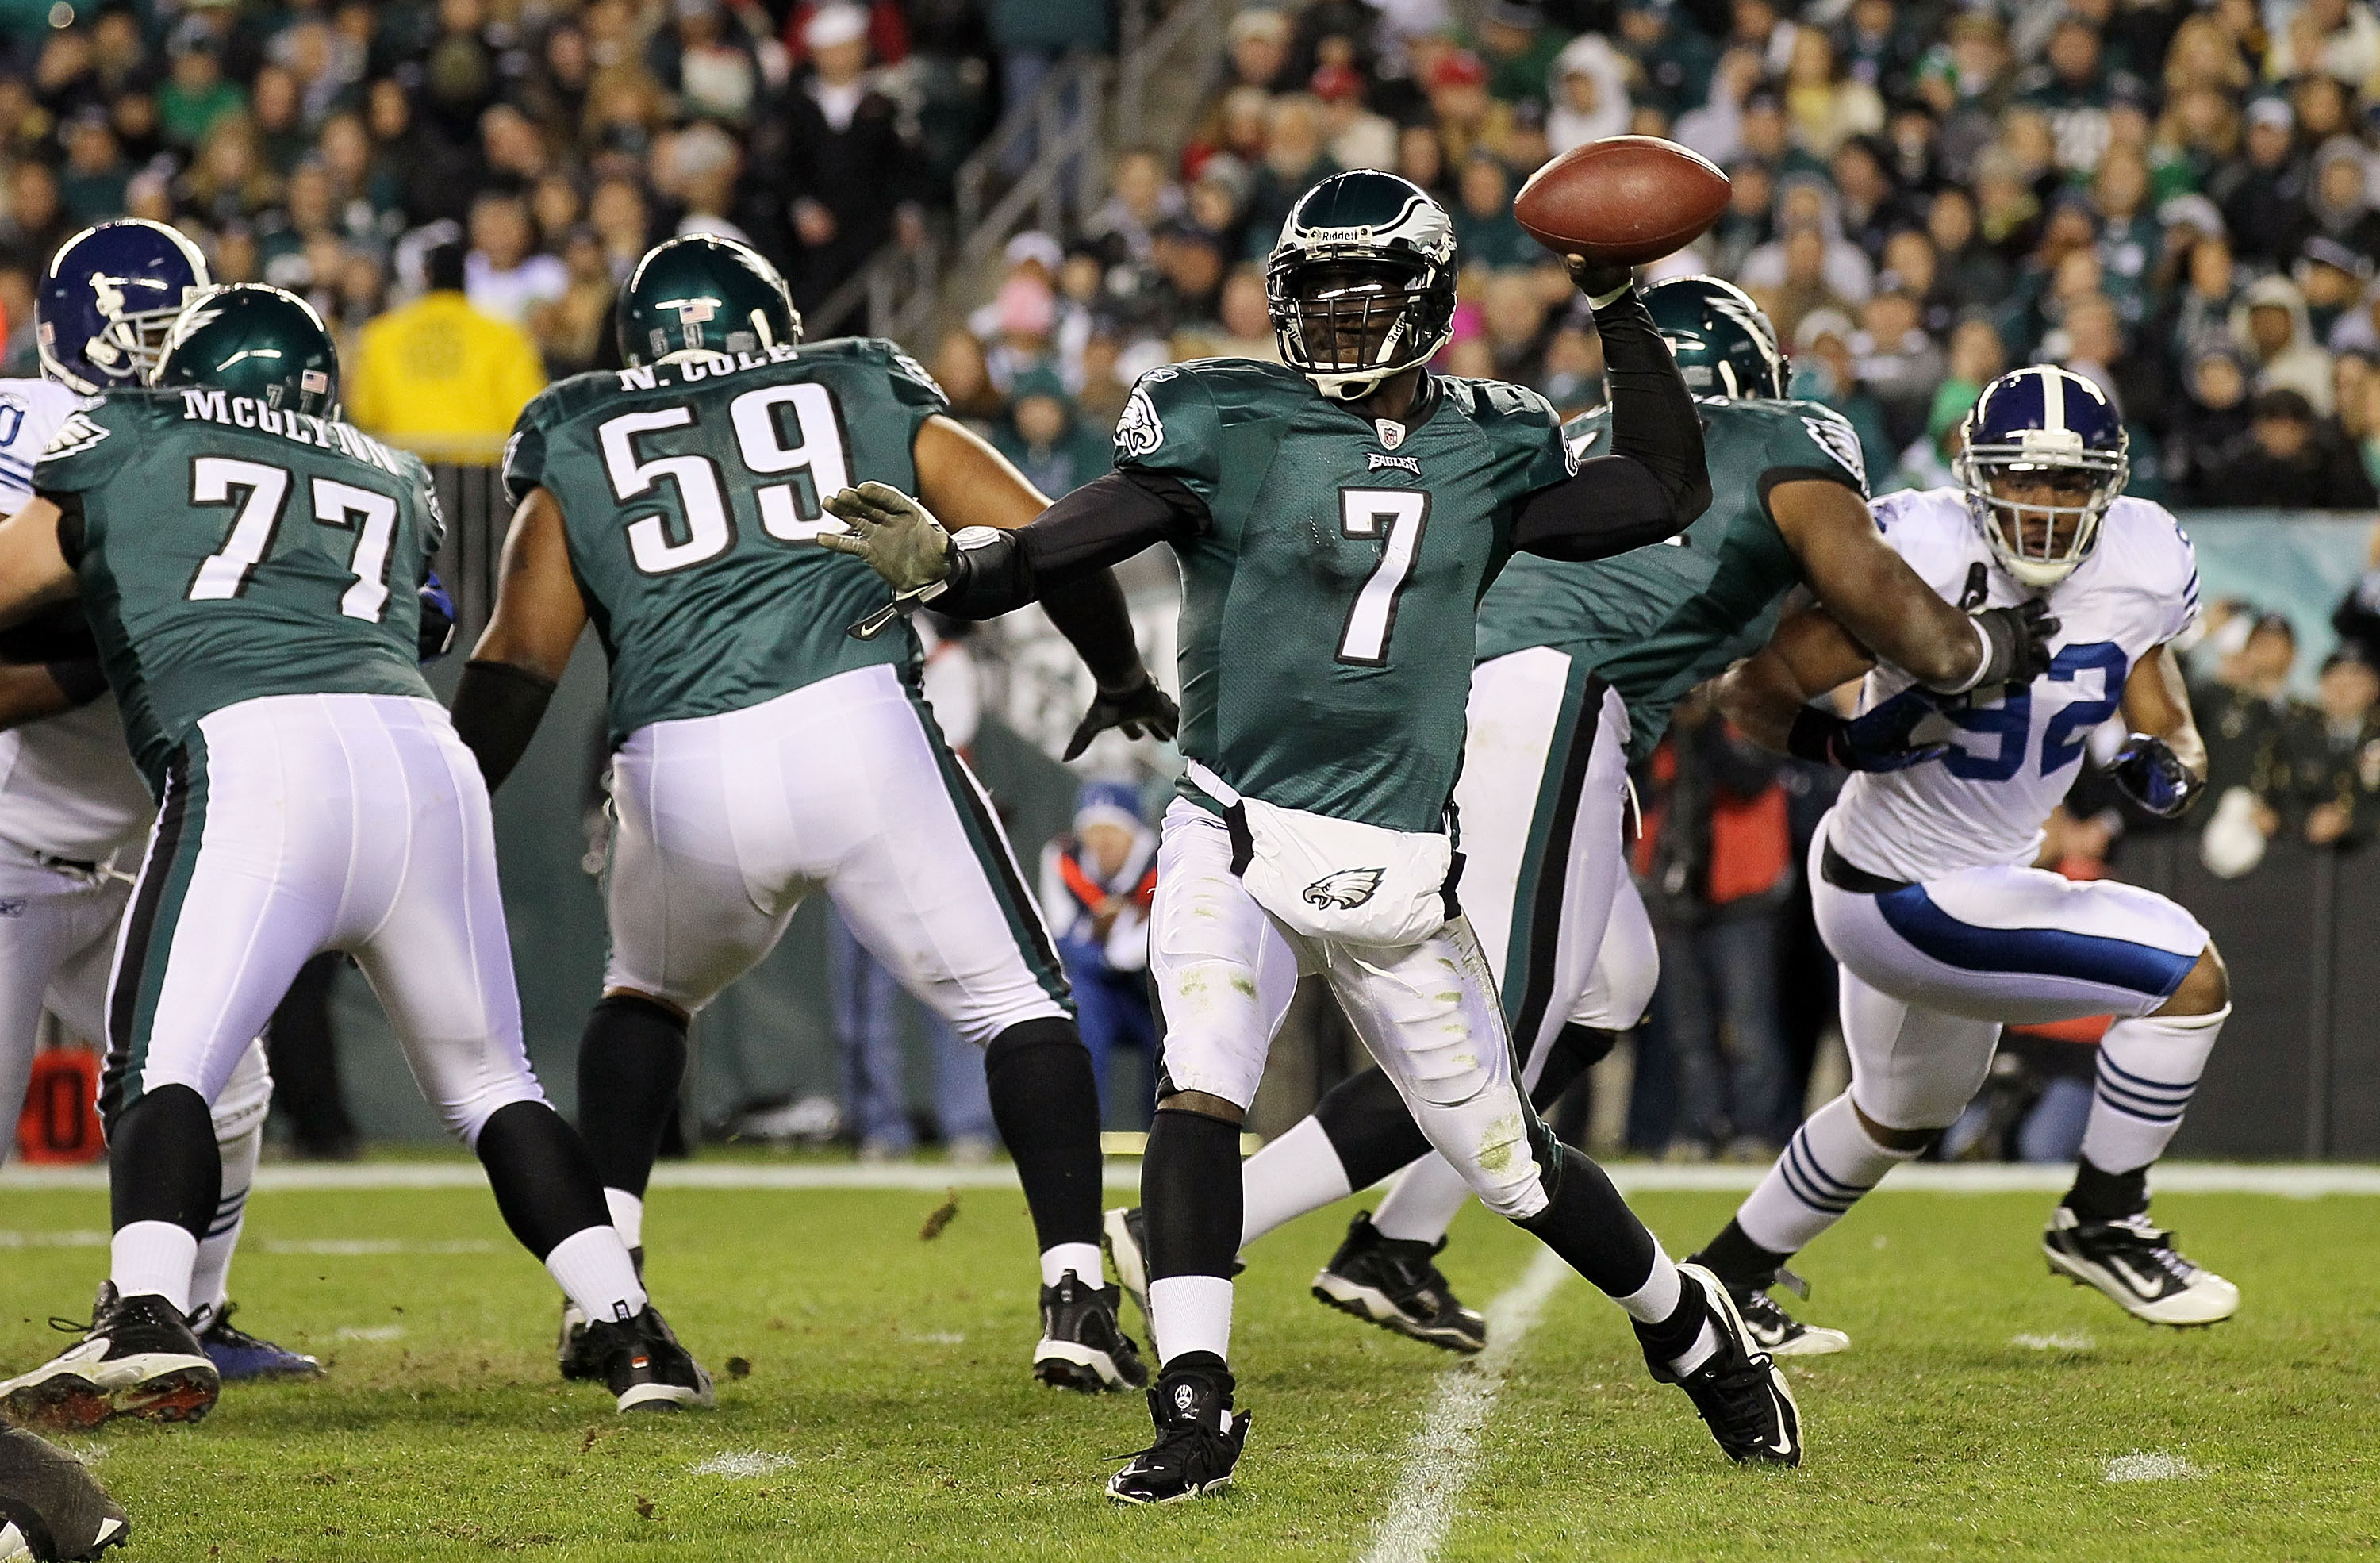 PHILADELPHIA - NOVEMBER 07:  Michael Vick #7 of the Philadelphia Eagles throws a pass against the Indianapolis Colts on November 7, 2010 at Lincoln Financial Field in Philadelphia, Pennsylvania. The Eagles defeated the Colts 26-24.  (Photo by Jim McIsaac/